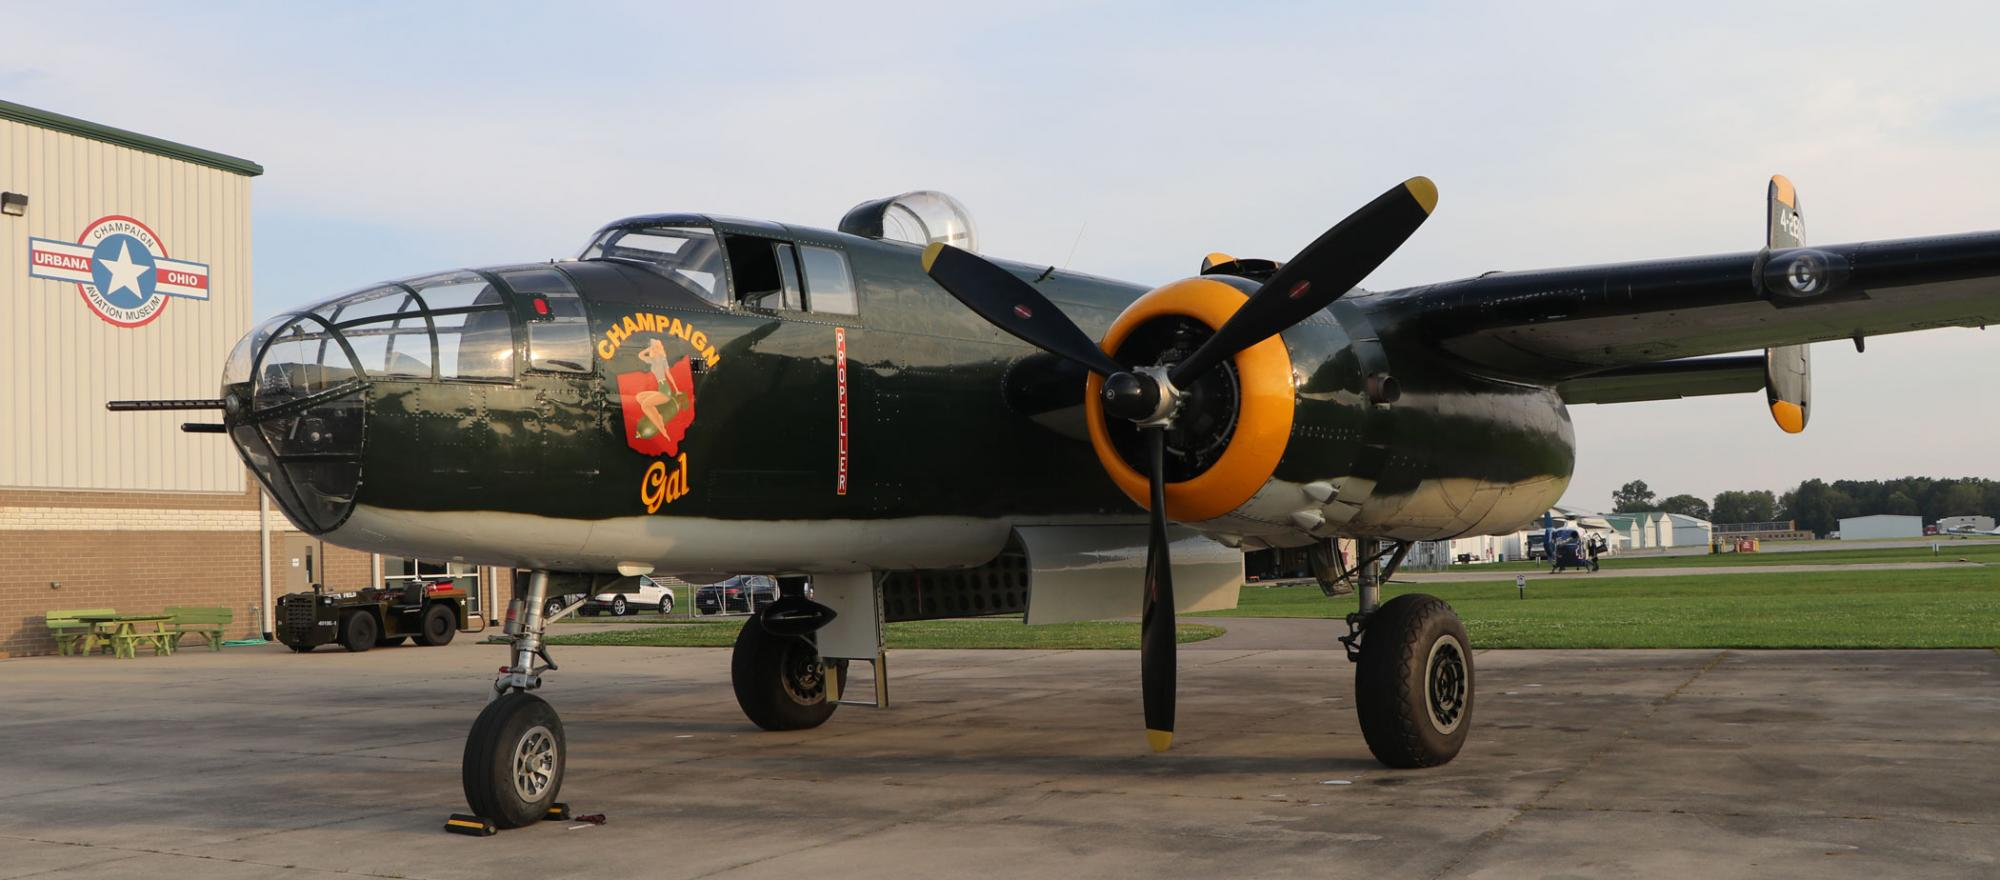 """In the B-25, you feel the history, It's like flying for the first time,"" says Dave Shiffer, a pilot for the Champaign Aviation Museum in Urbana, Ohio."